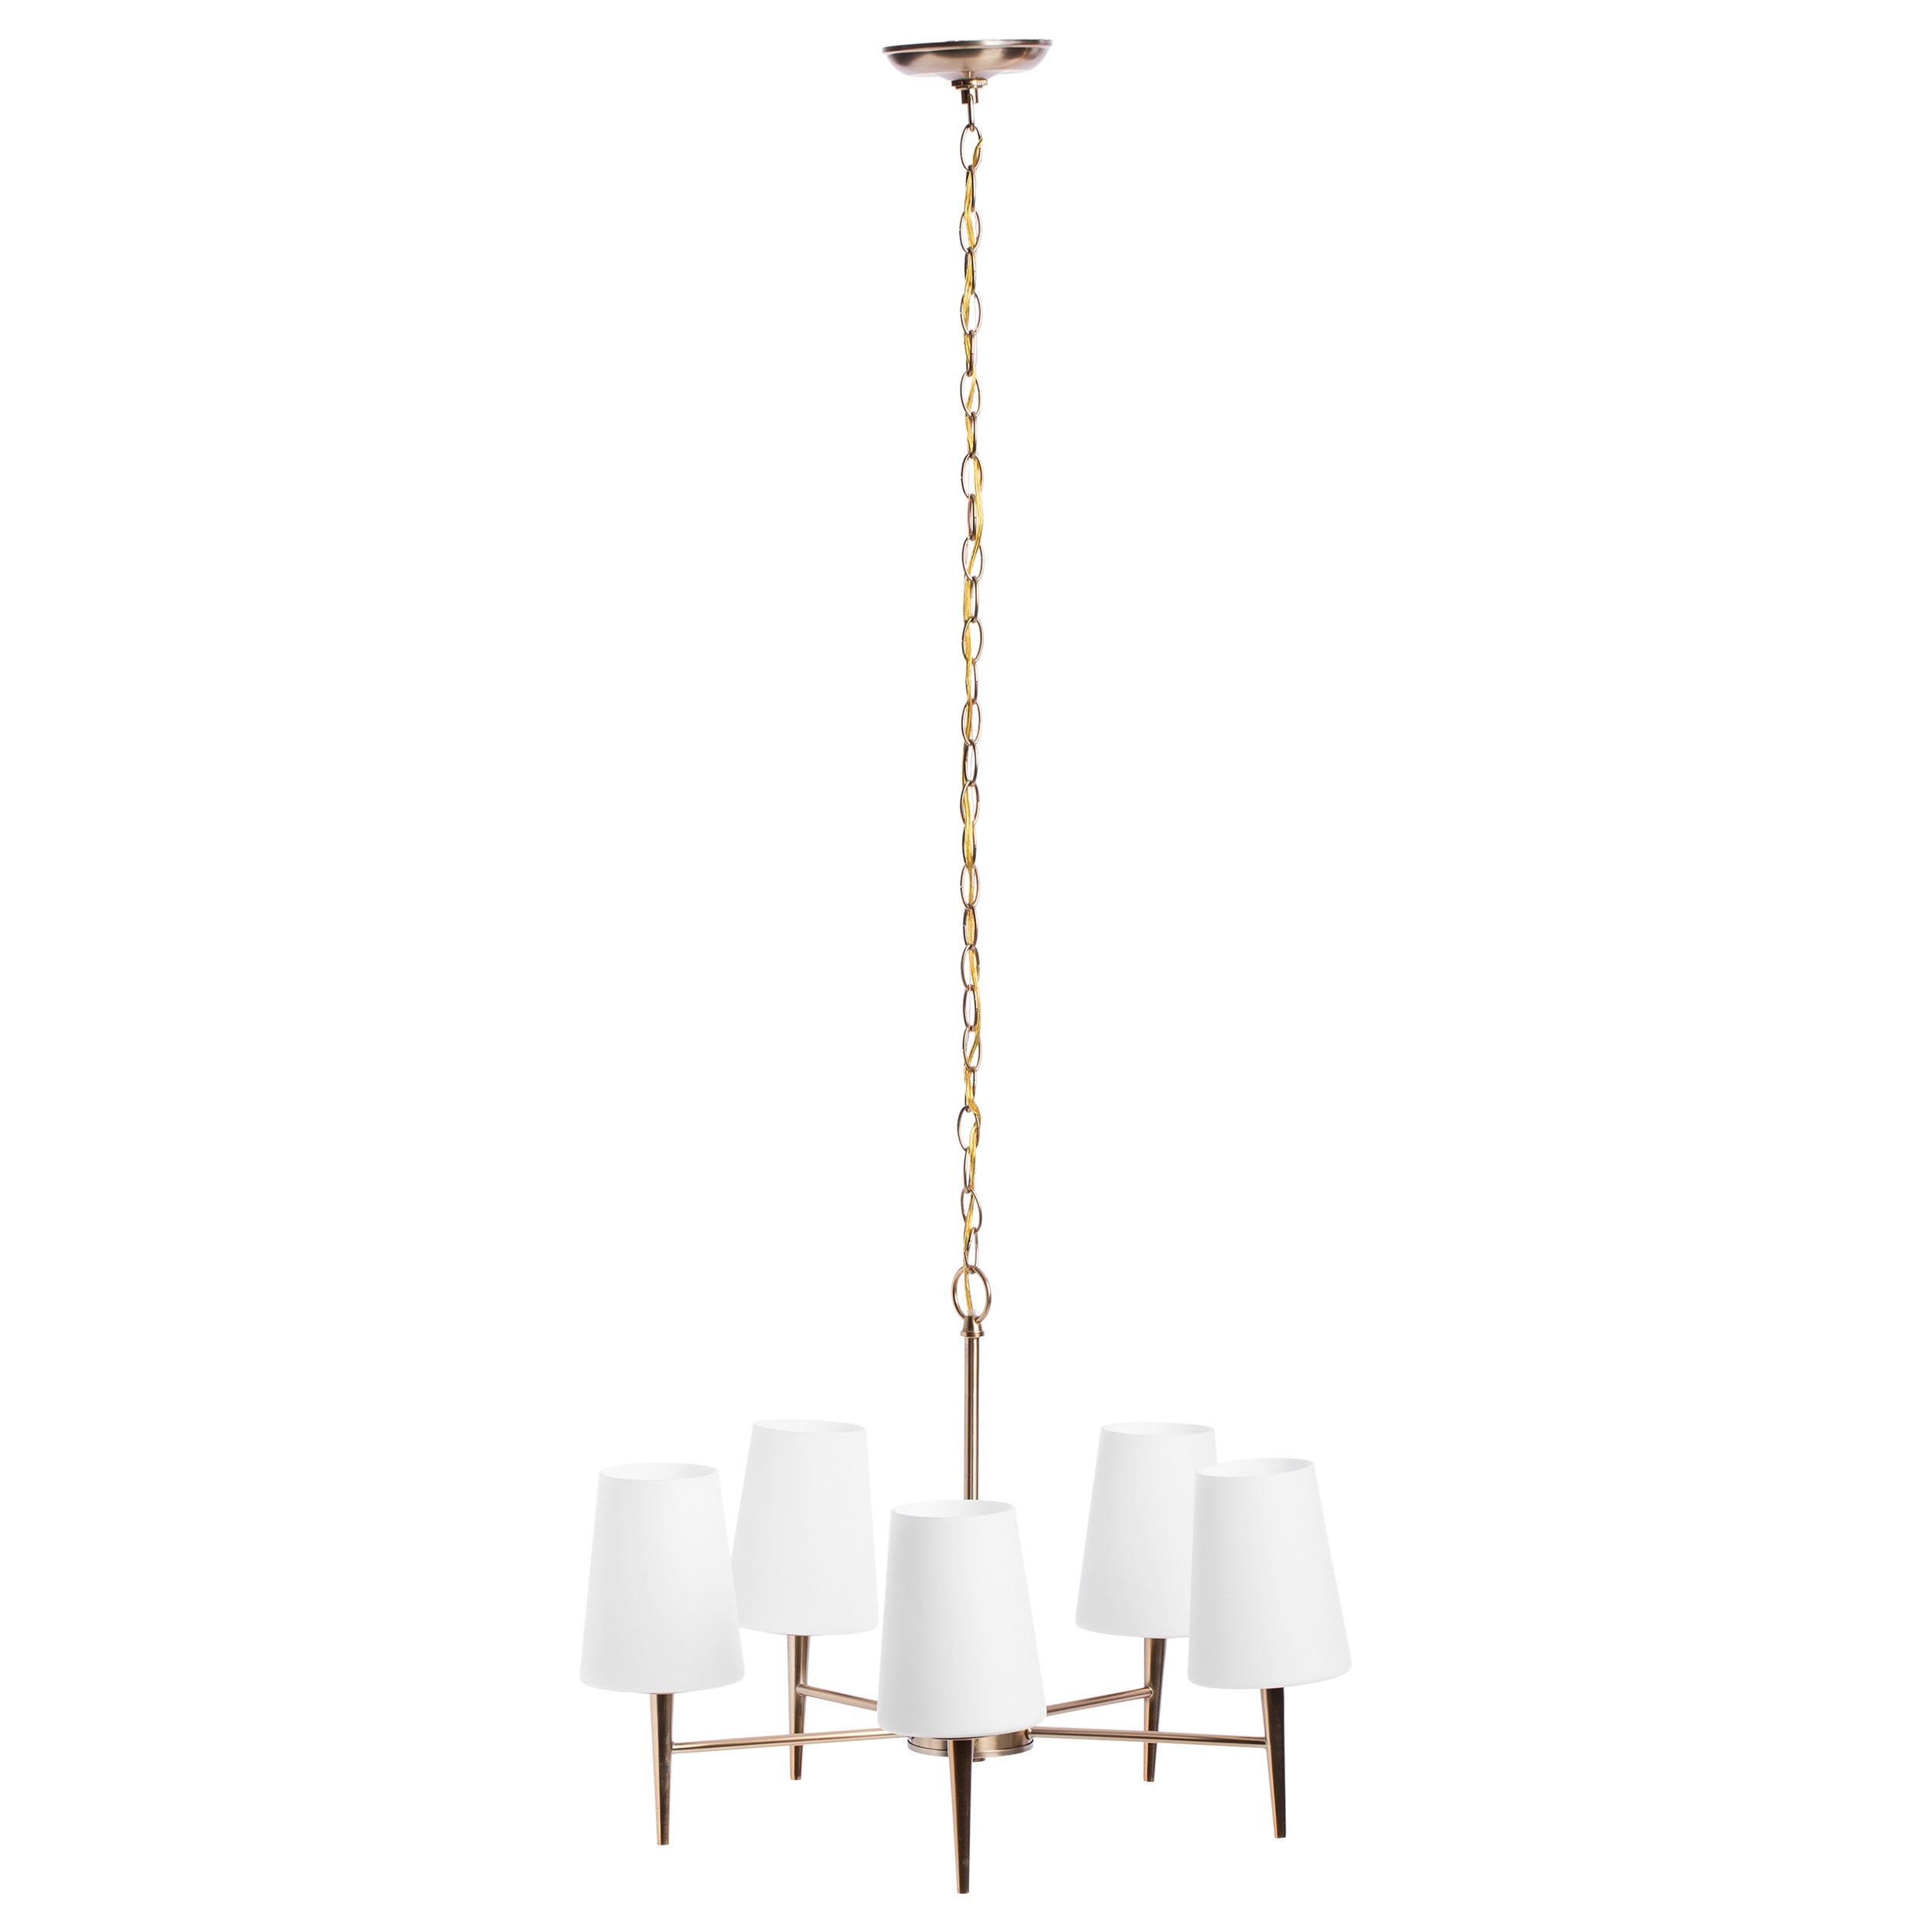 Driscoll 5 light single tier chandelier free shipping today driscoll 5 light single tier chandelier free shipping today overstock 16147372 mozeypictures Image collections